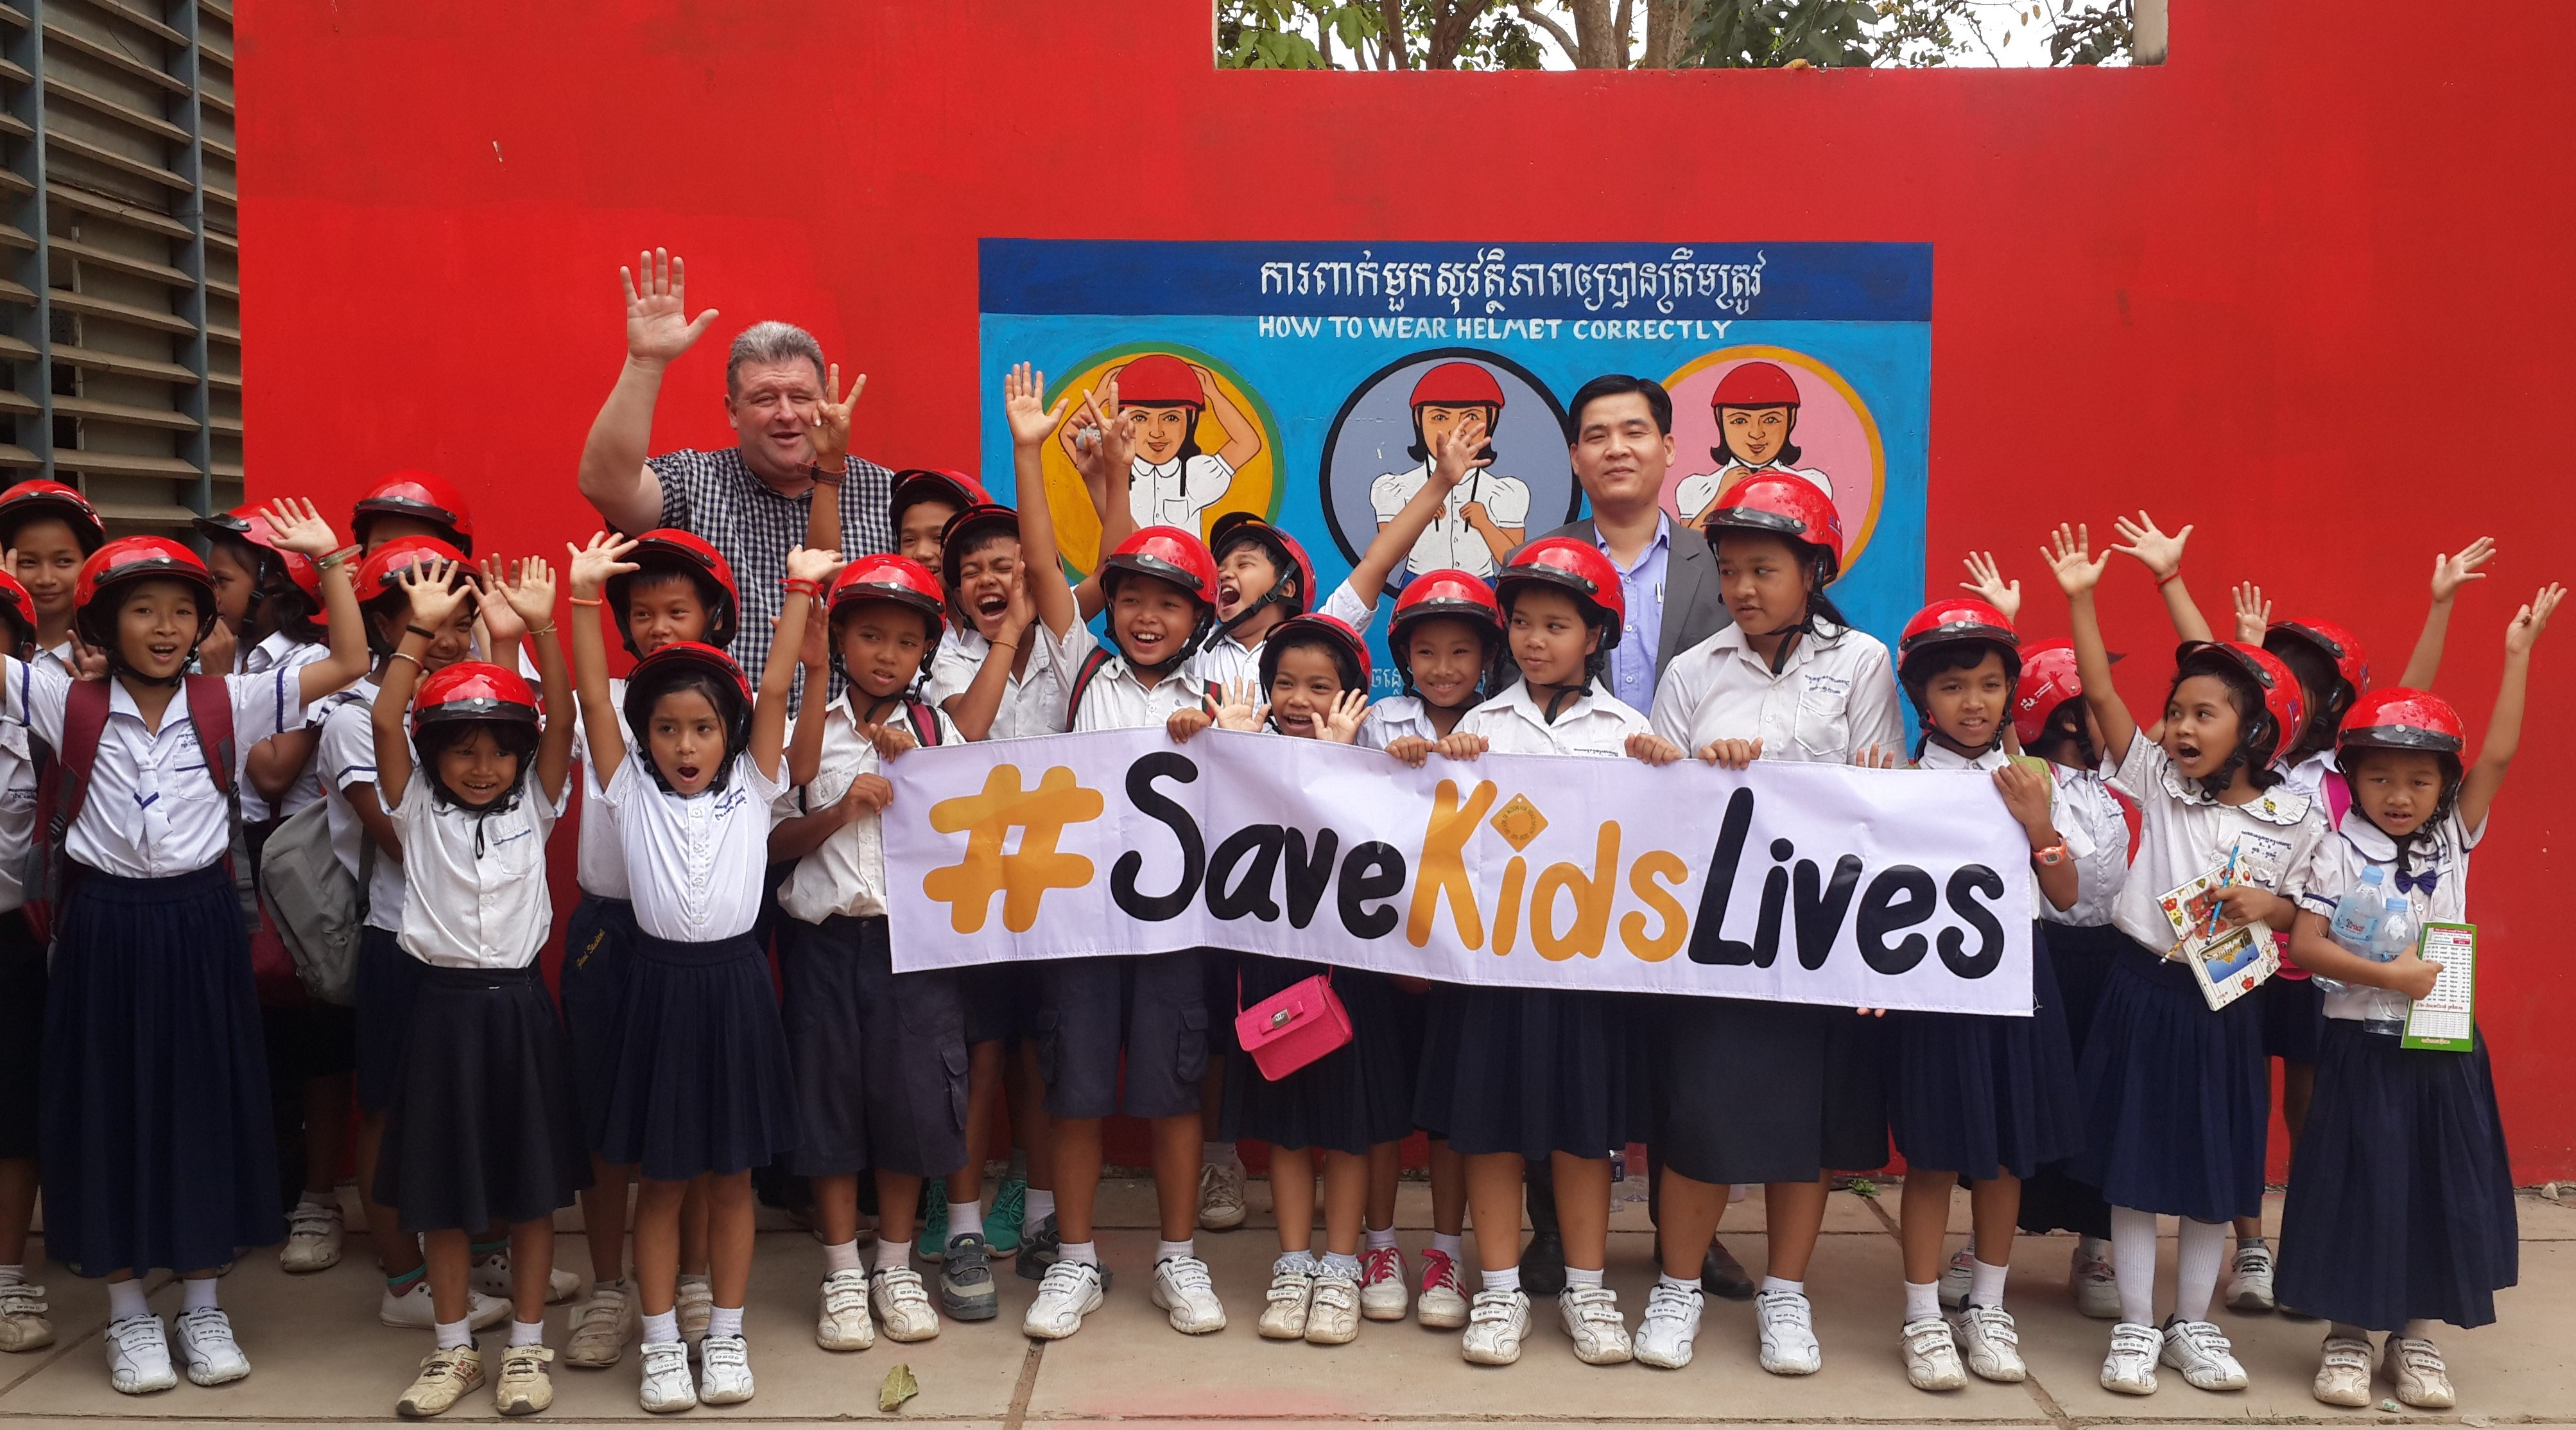 Students encouraged to wear motorcycle helmets as part of school uniforms